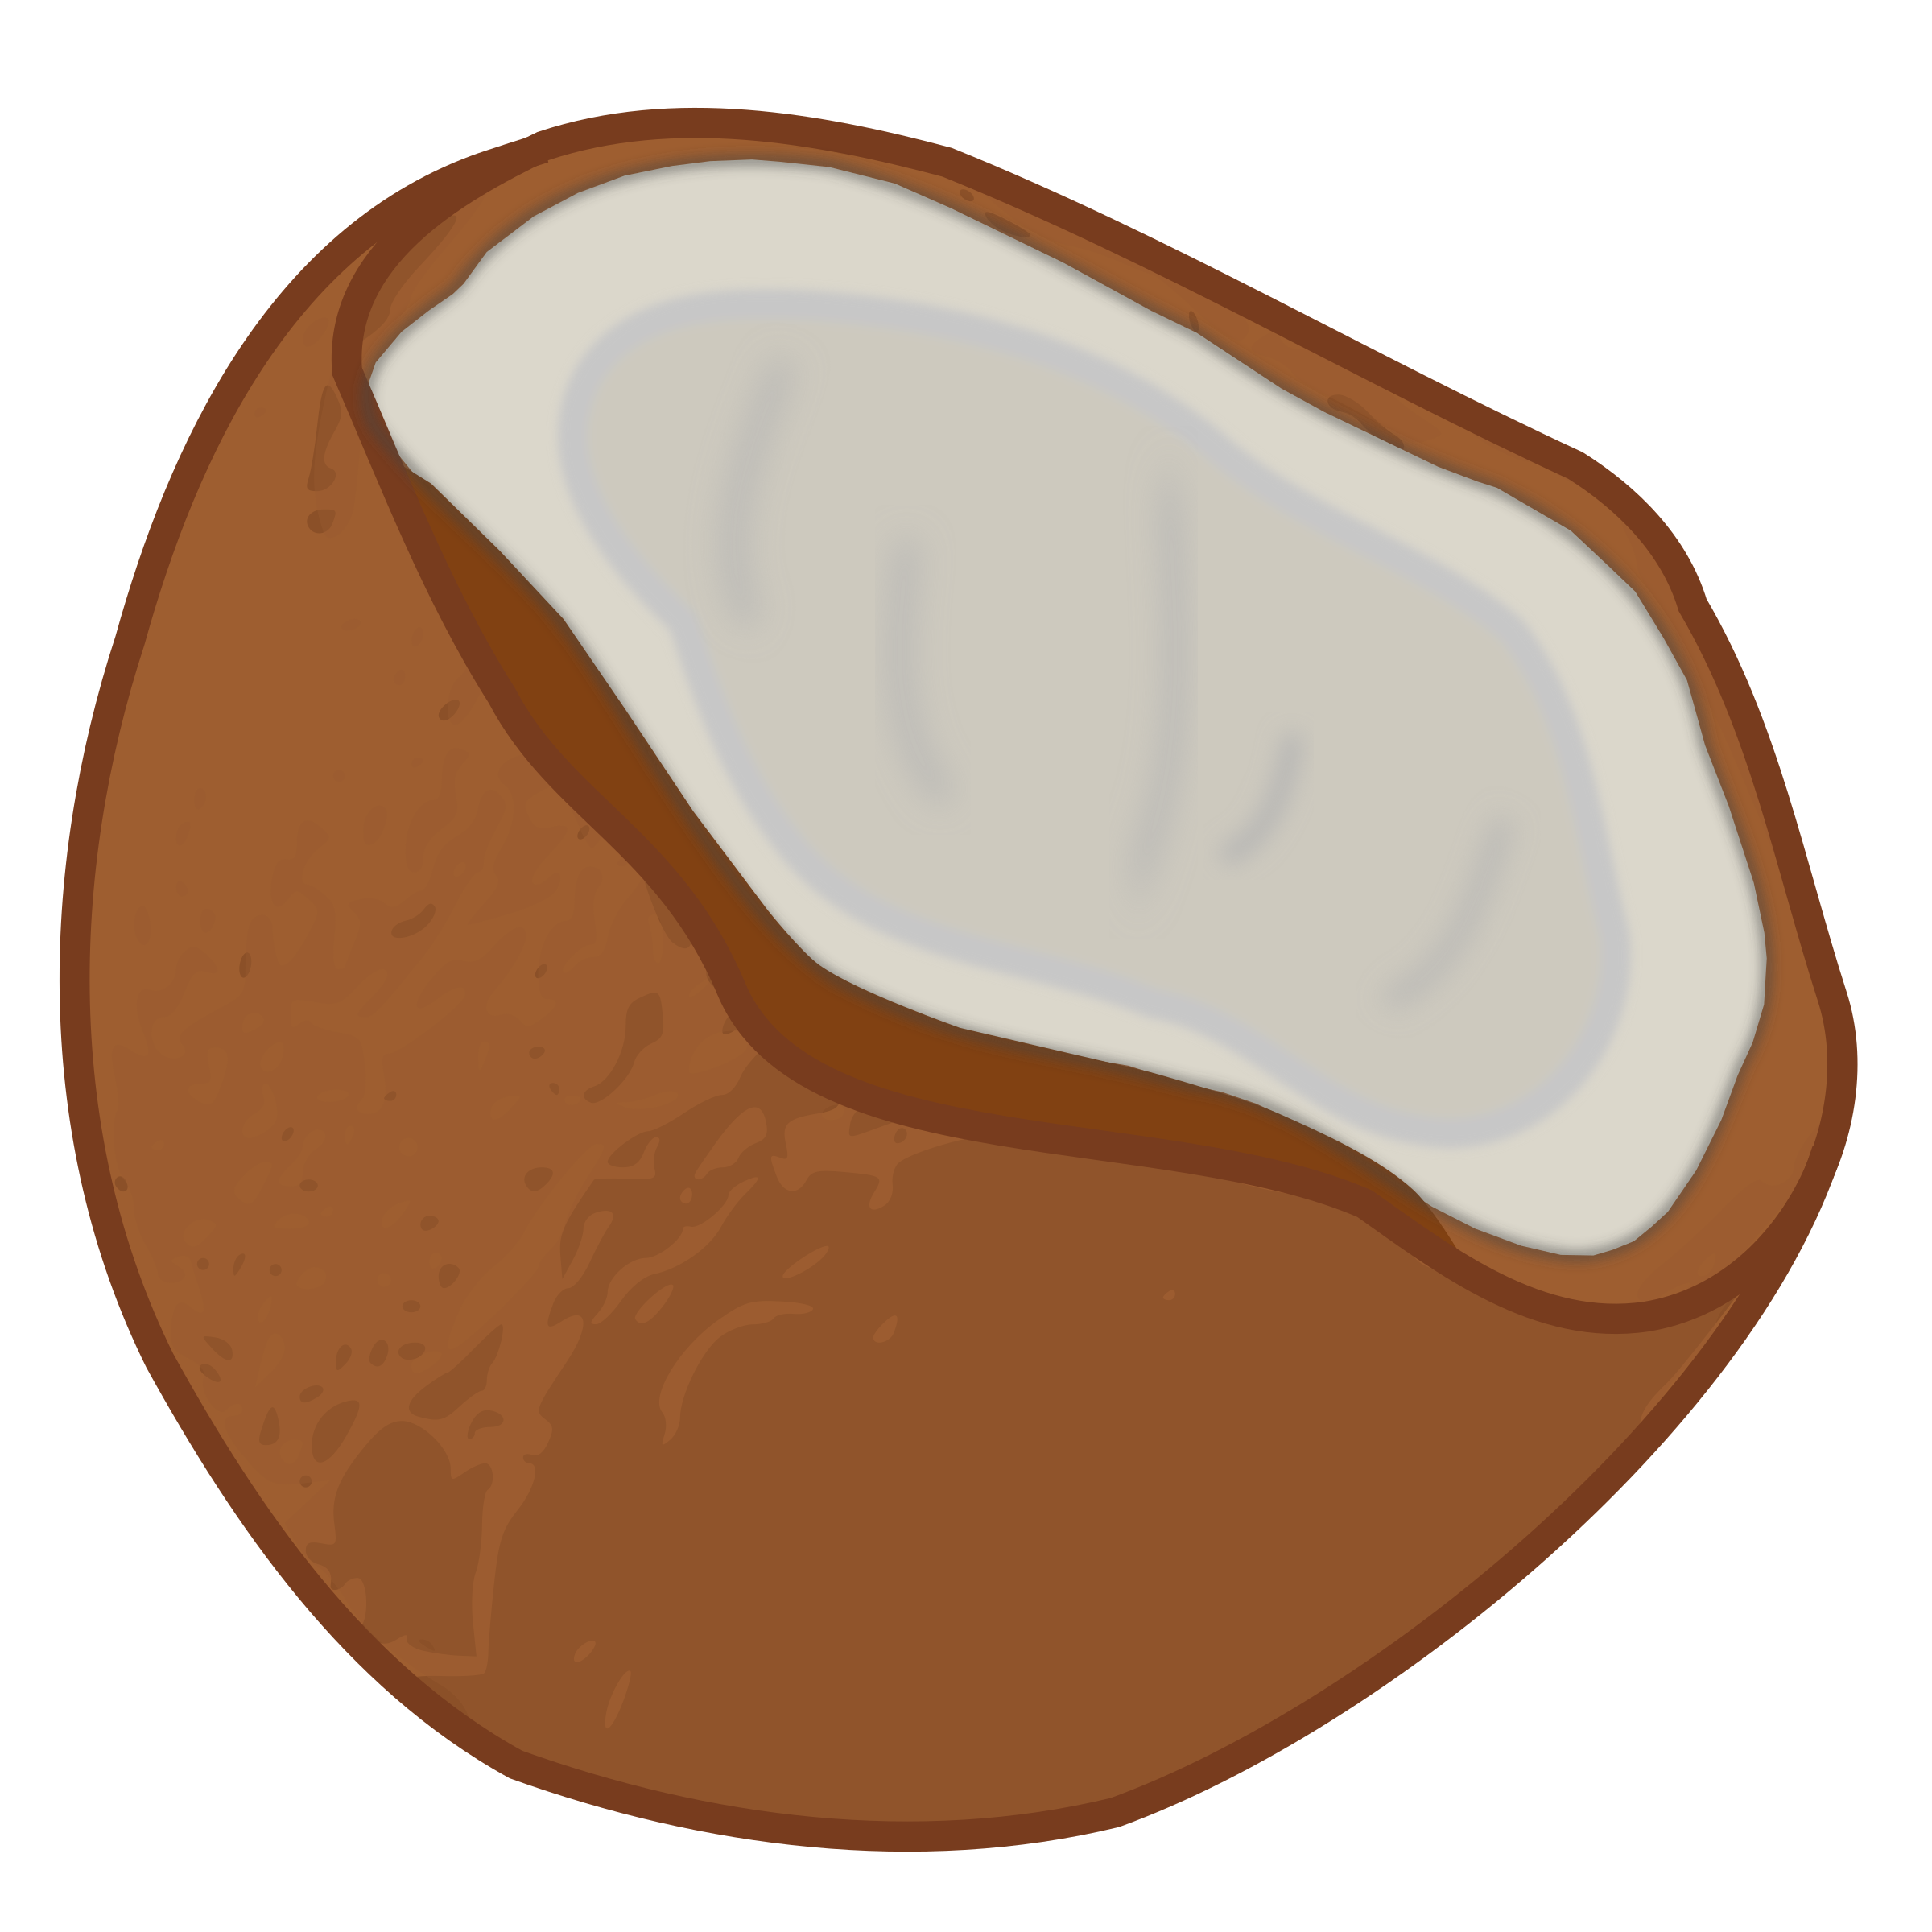 Coconut by laobc